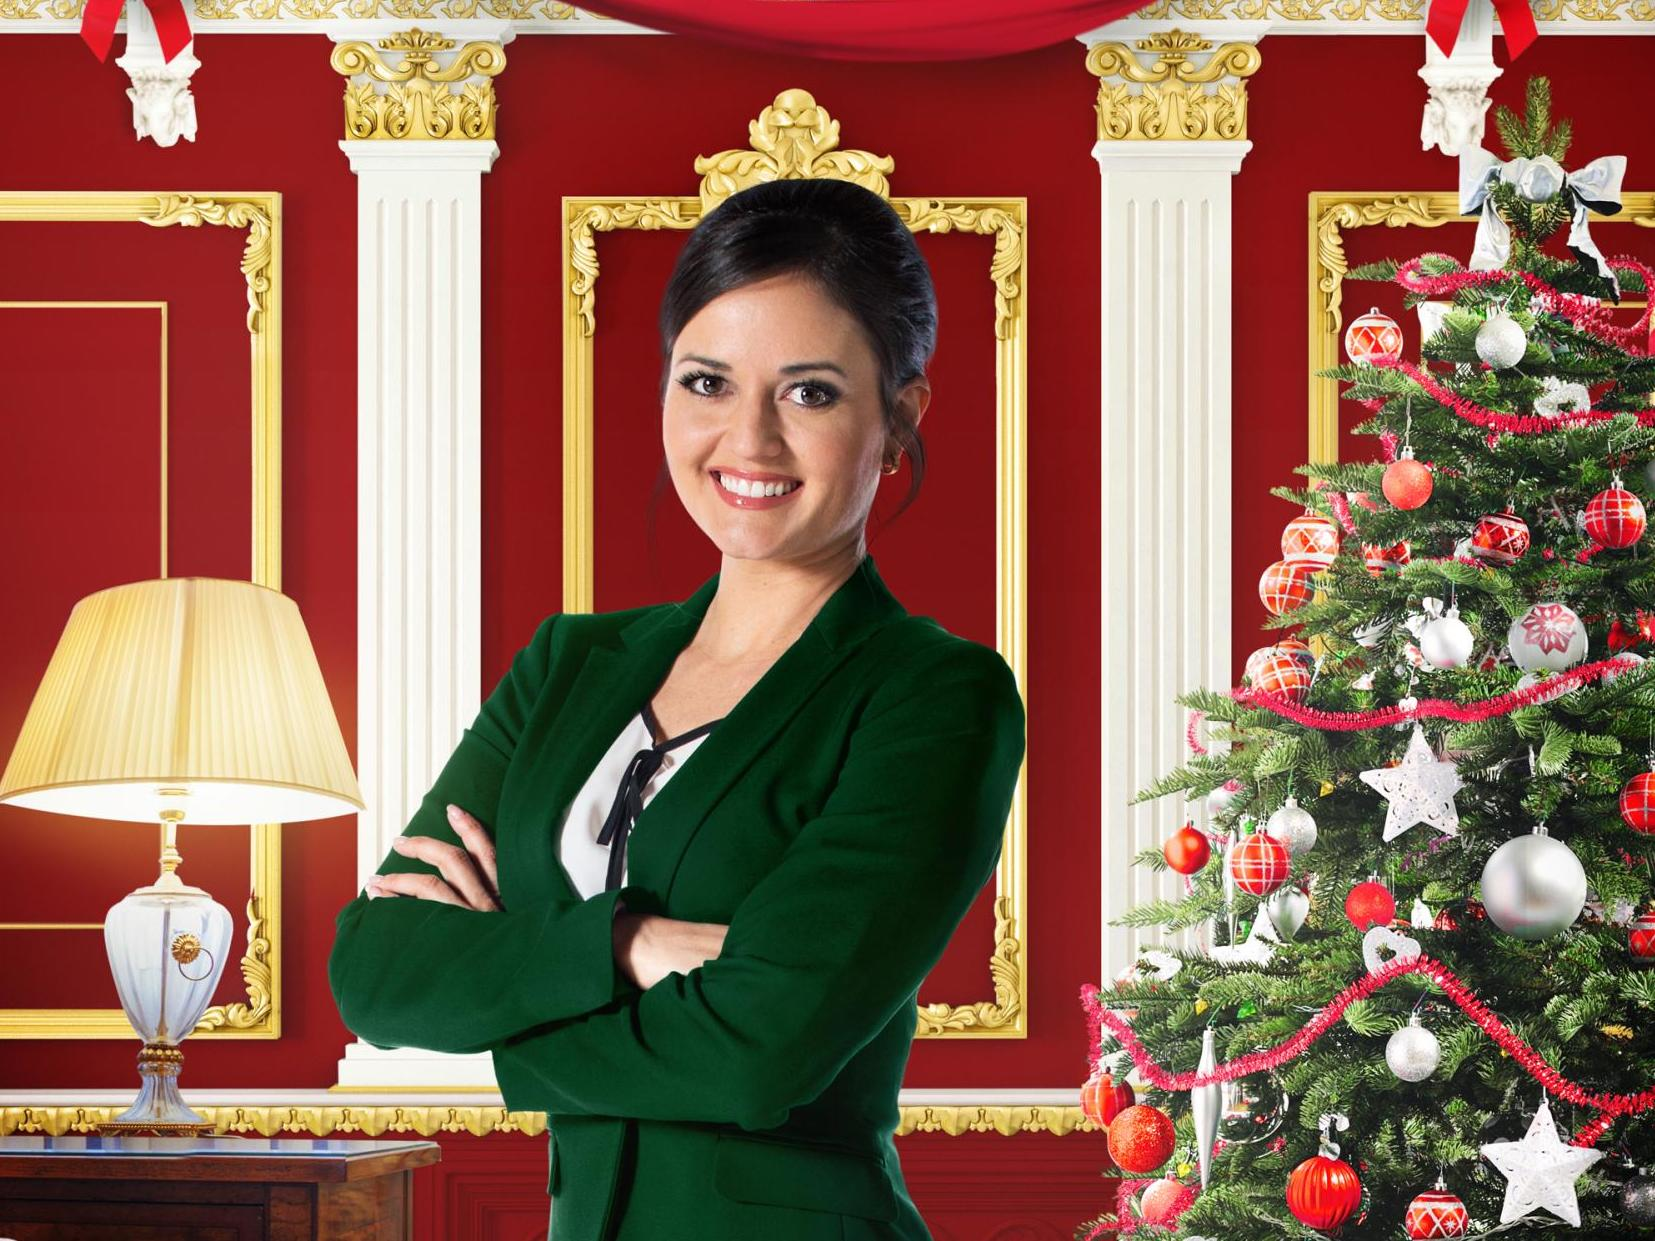 We Own Christmas Netflix Can T Compete With Hallmark When It Comes To The Festive Romcom The Independent The Independent